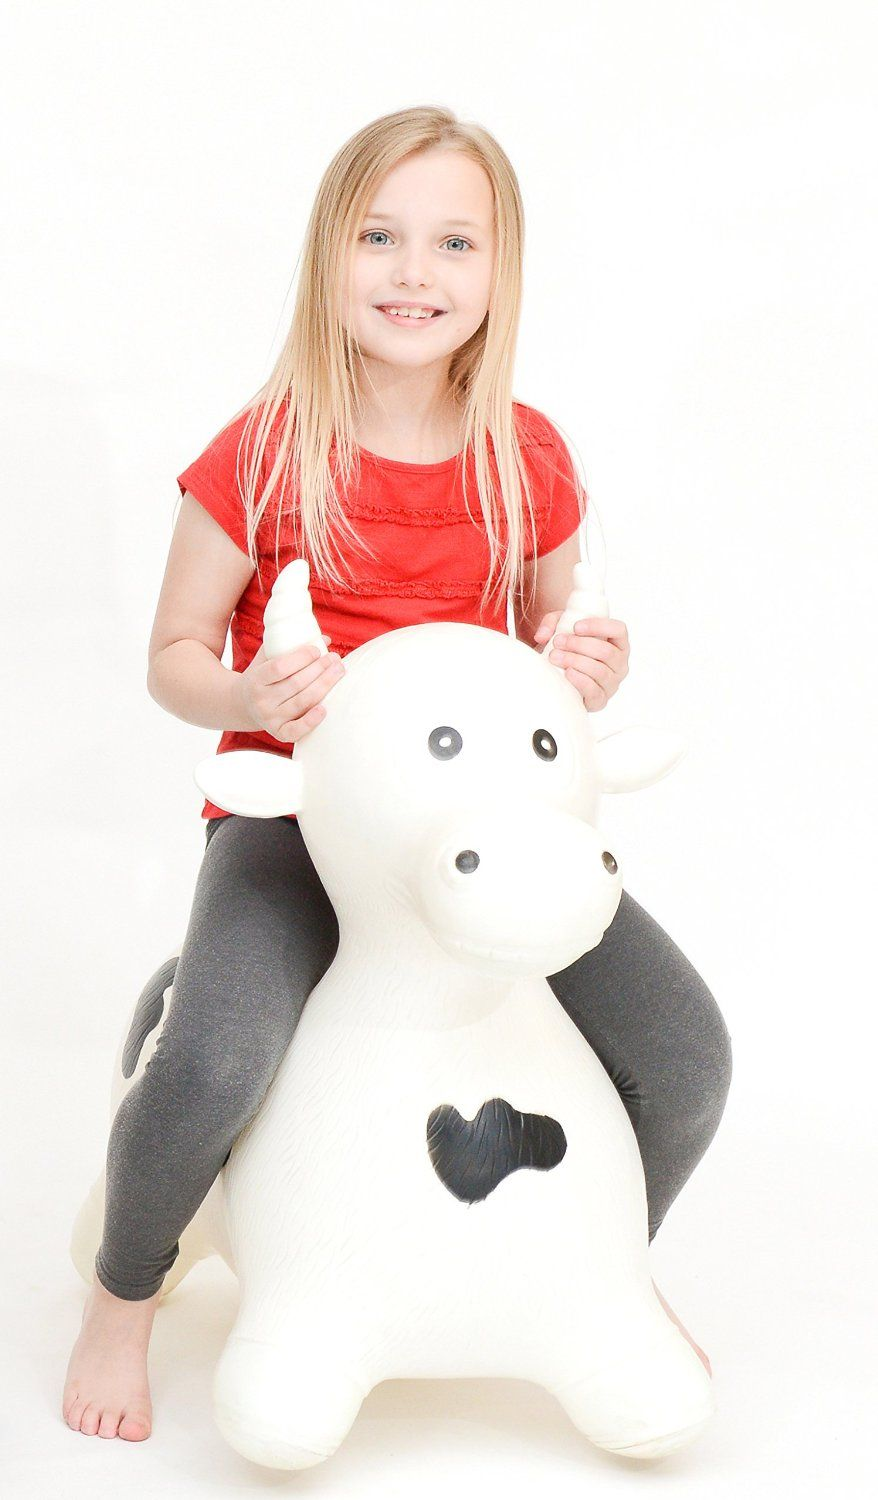 Riding Toys Age 5 : Happy hopperz bouncy ride on toy extra large white bull